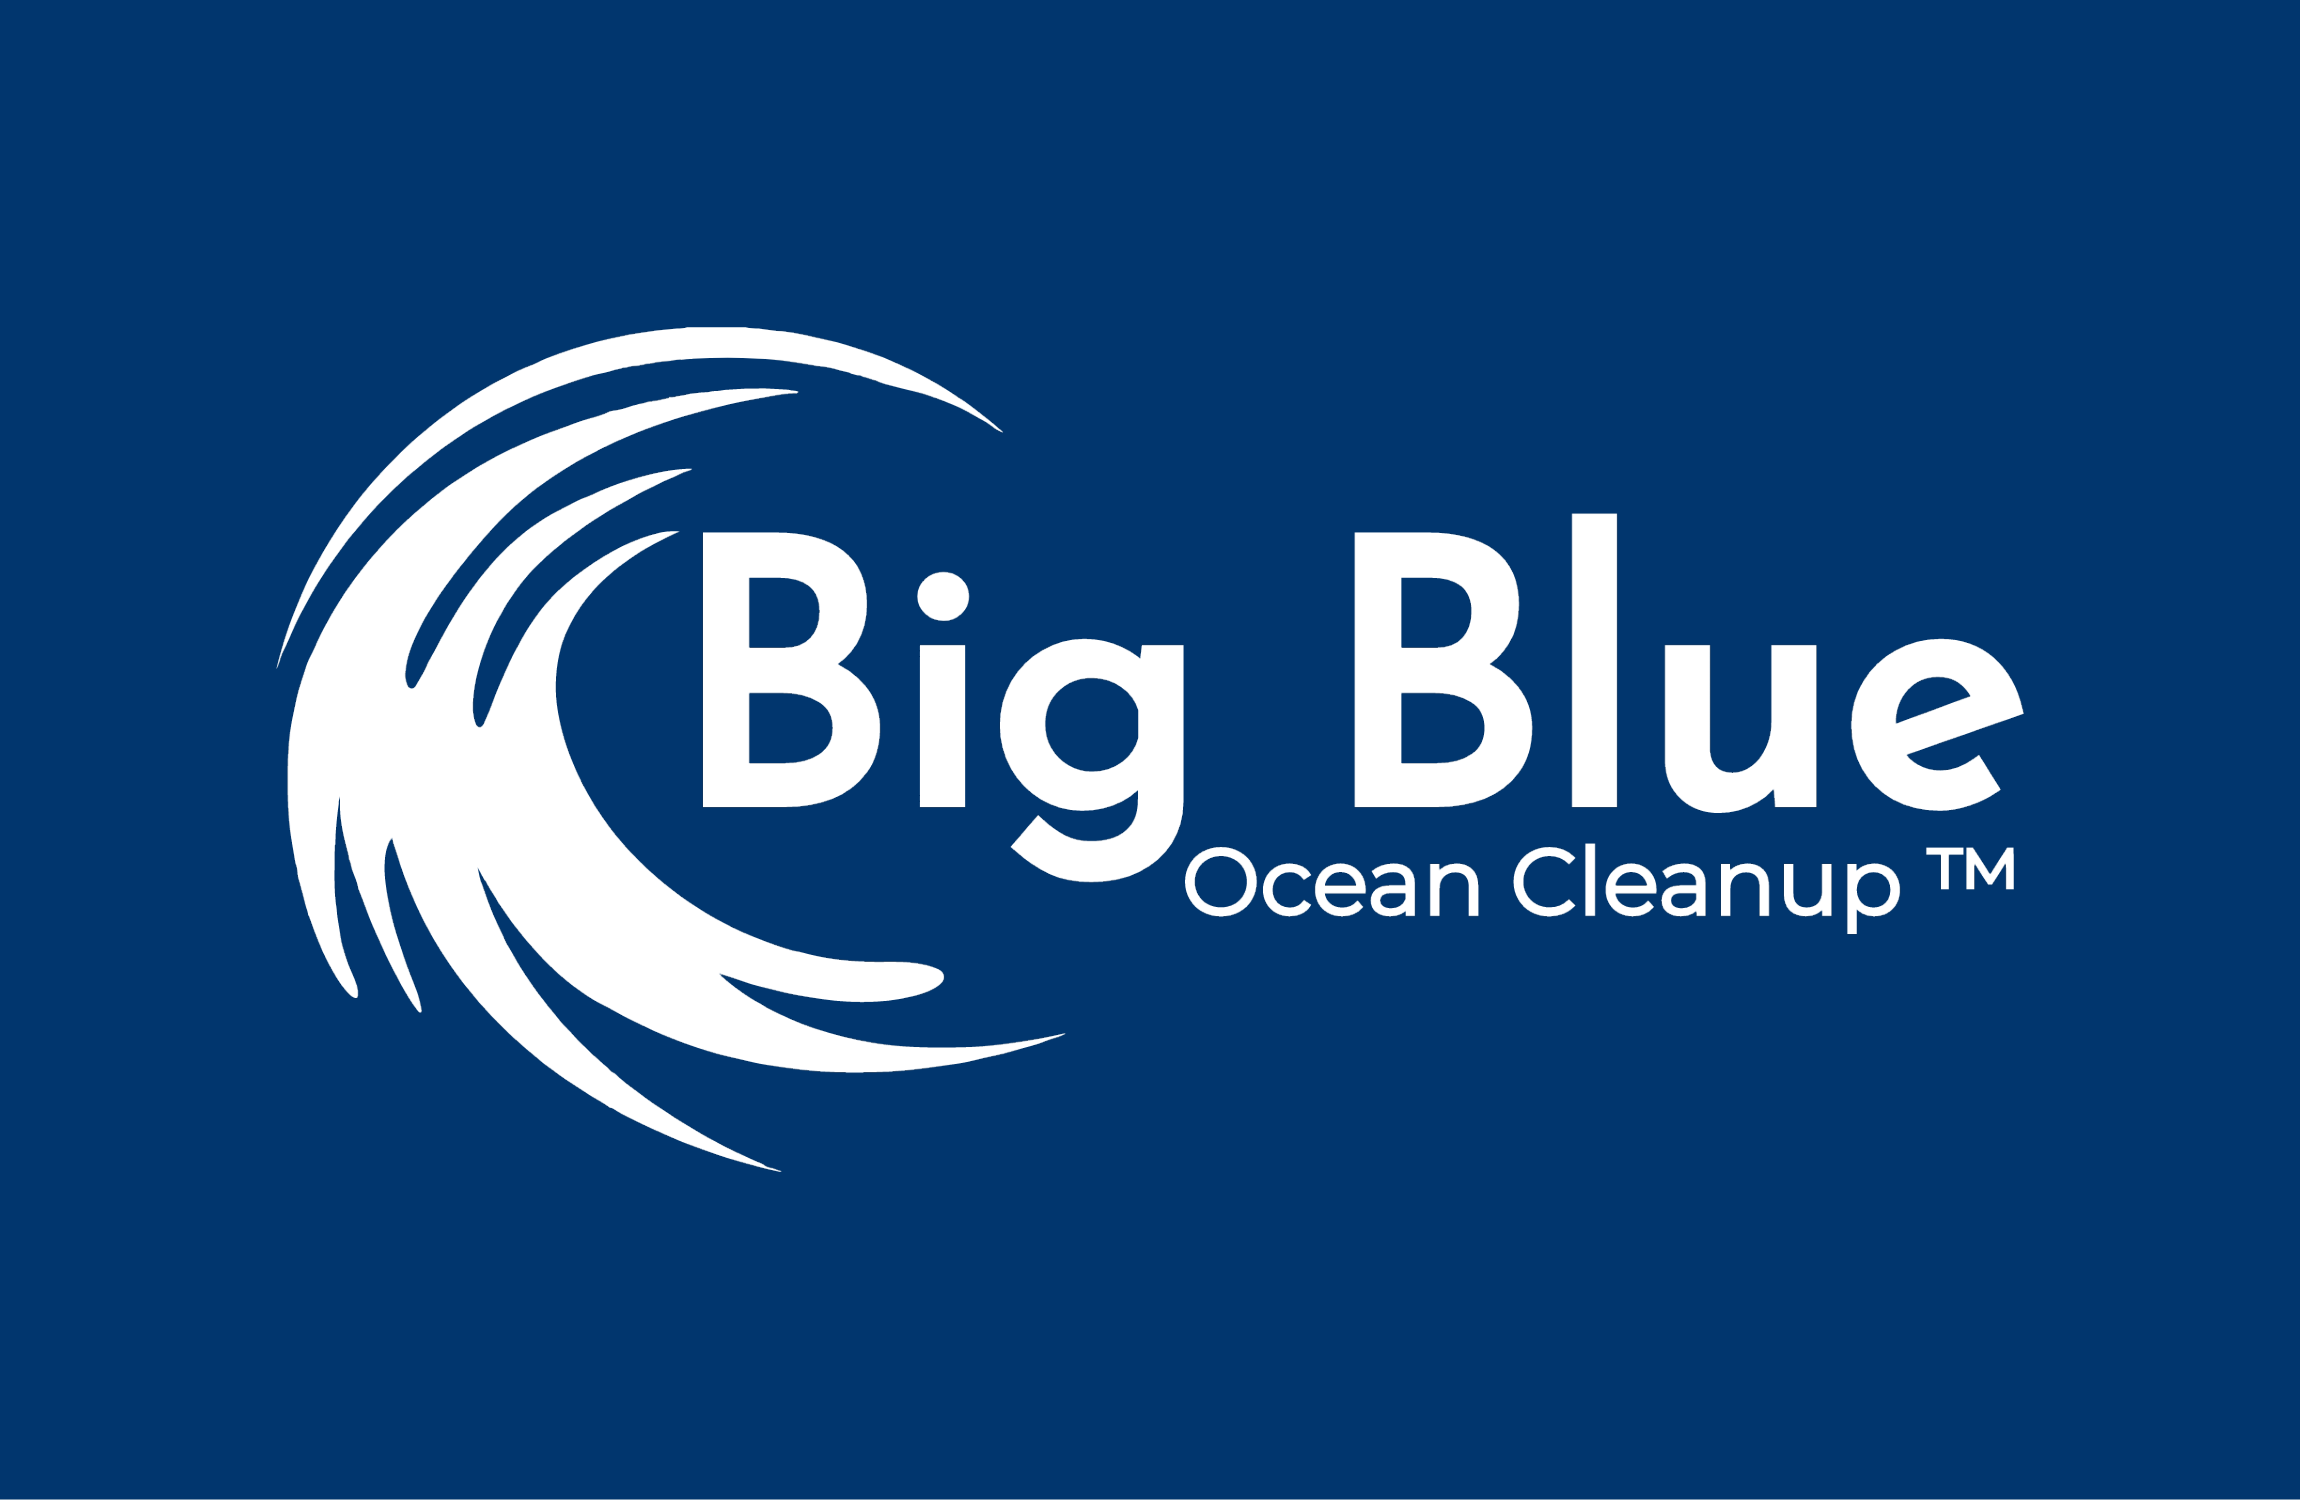 big blue ocean clean up logo